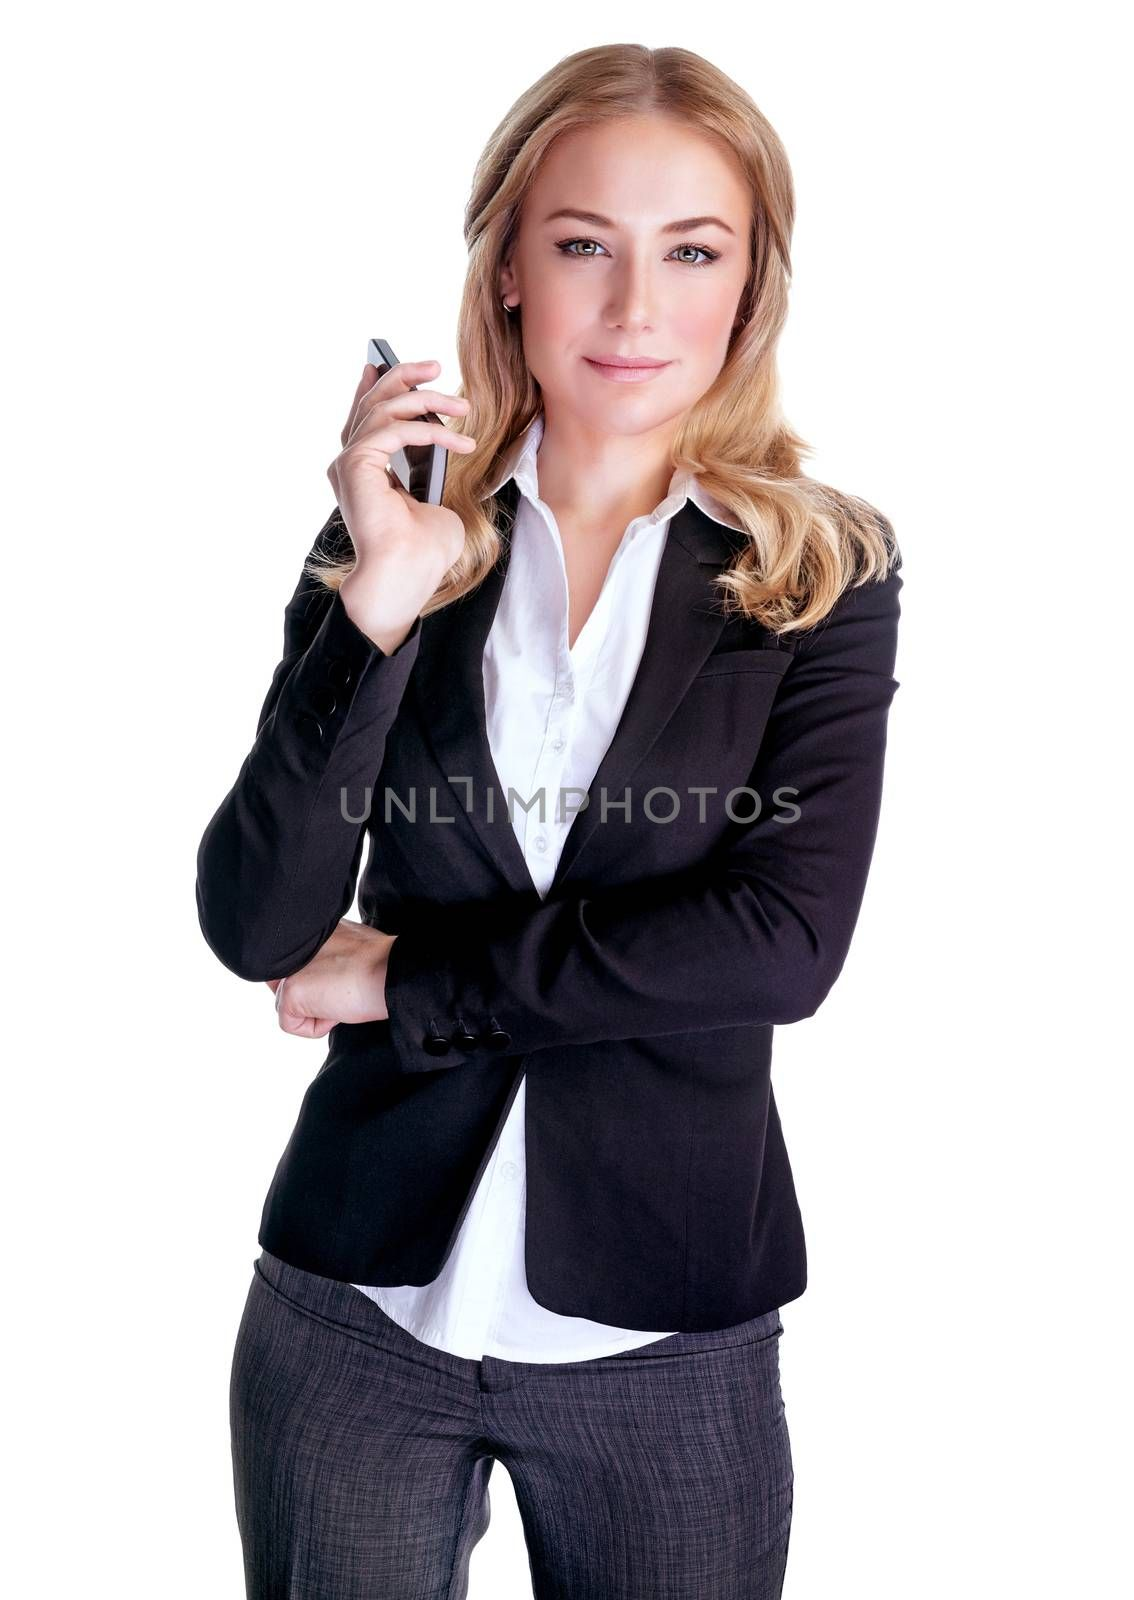 Portrait of young serious female speaking on mobile phone, isolated on white background, business people using portable device, communication concept